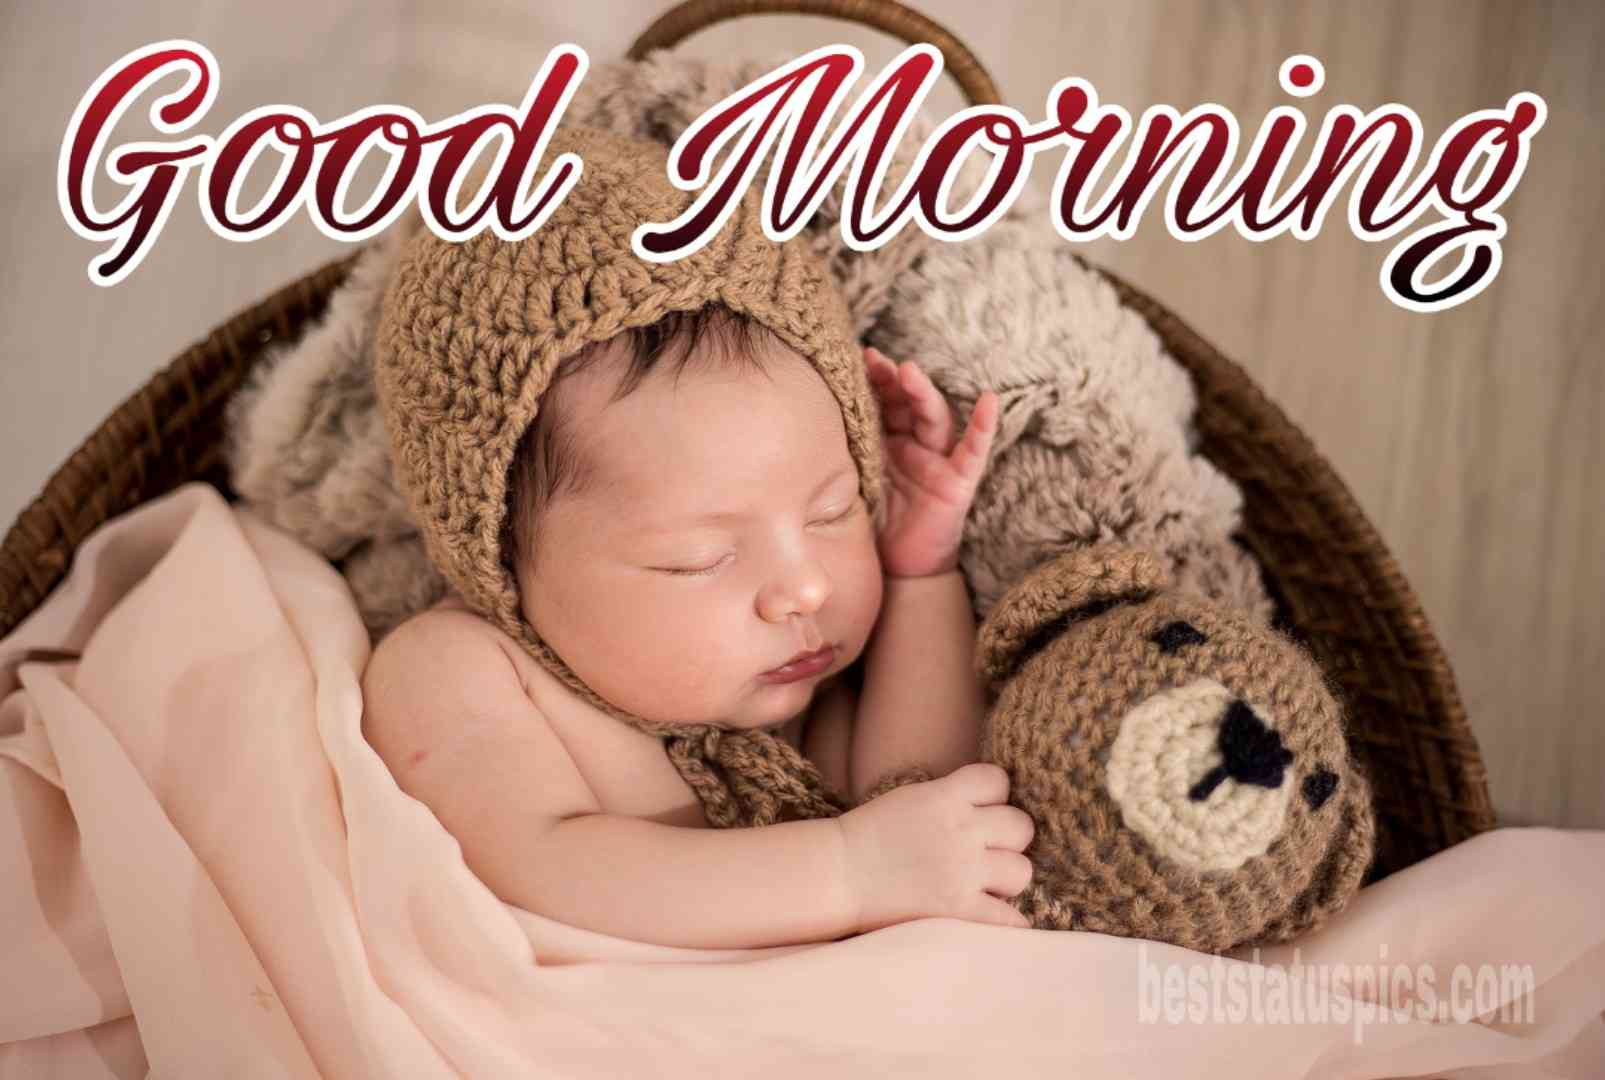 Good morning baby images for whatsapp status